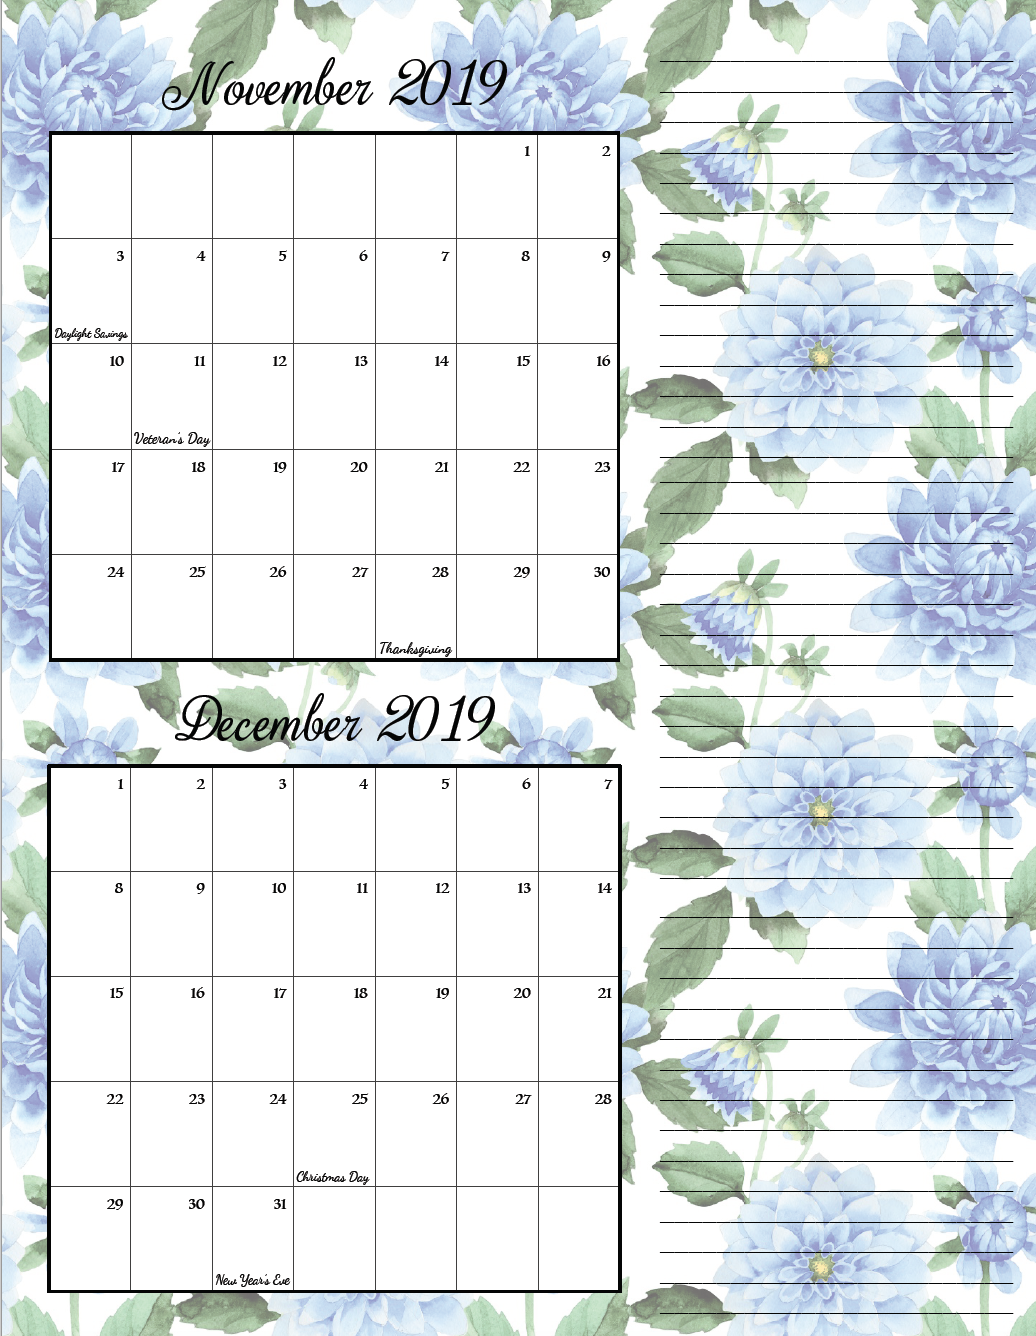 November/December. FREE Printable 2019 Bimonthly Calendars. Space for notes, holidays marked. 2 different designs! #free #freeprintable #printable #calendar #freecalendar #bimonthly #freeprintablecalendar